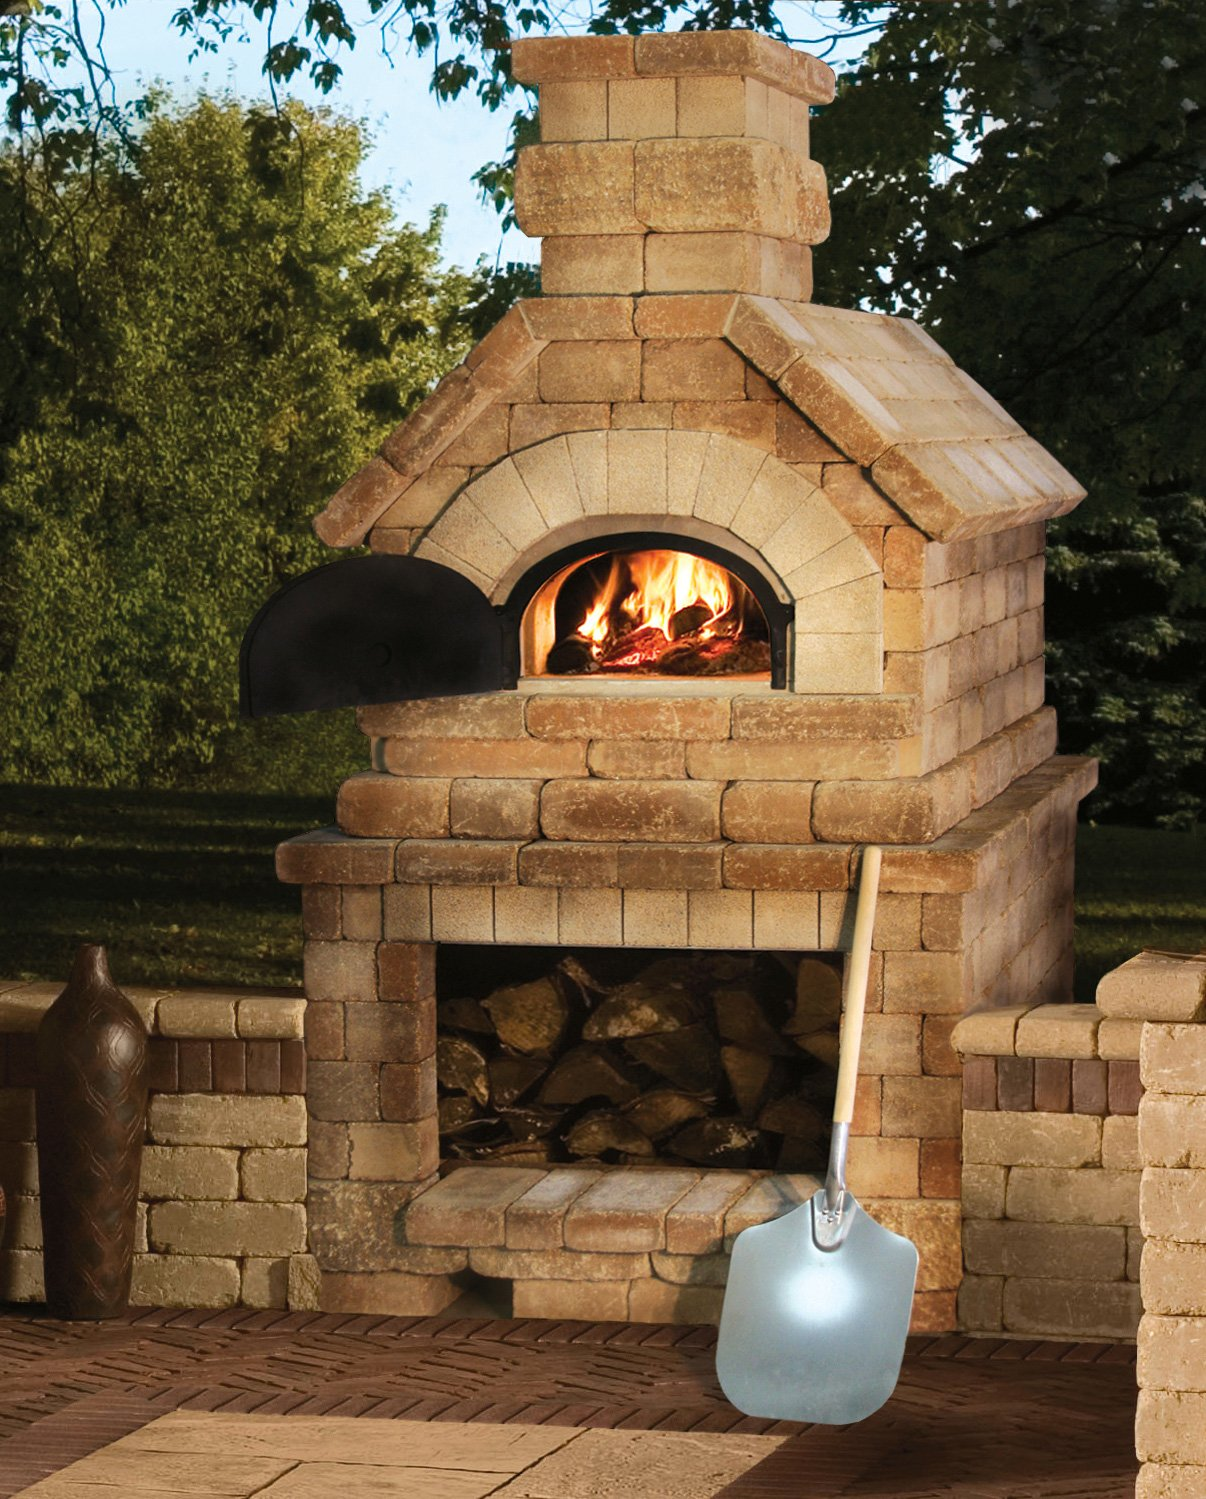 Masterchefsweepstakes pizza oven outdoor pizza oven